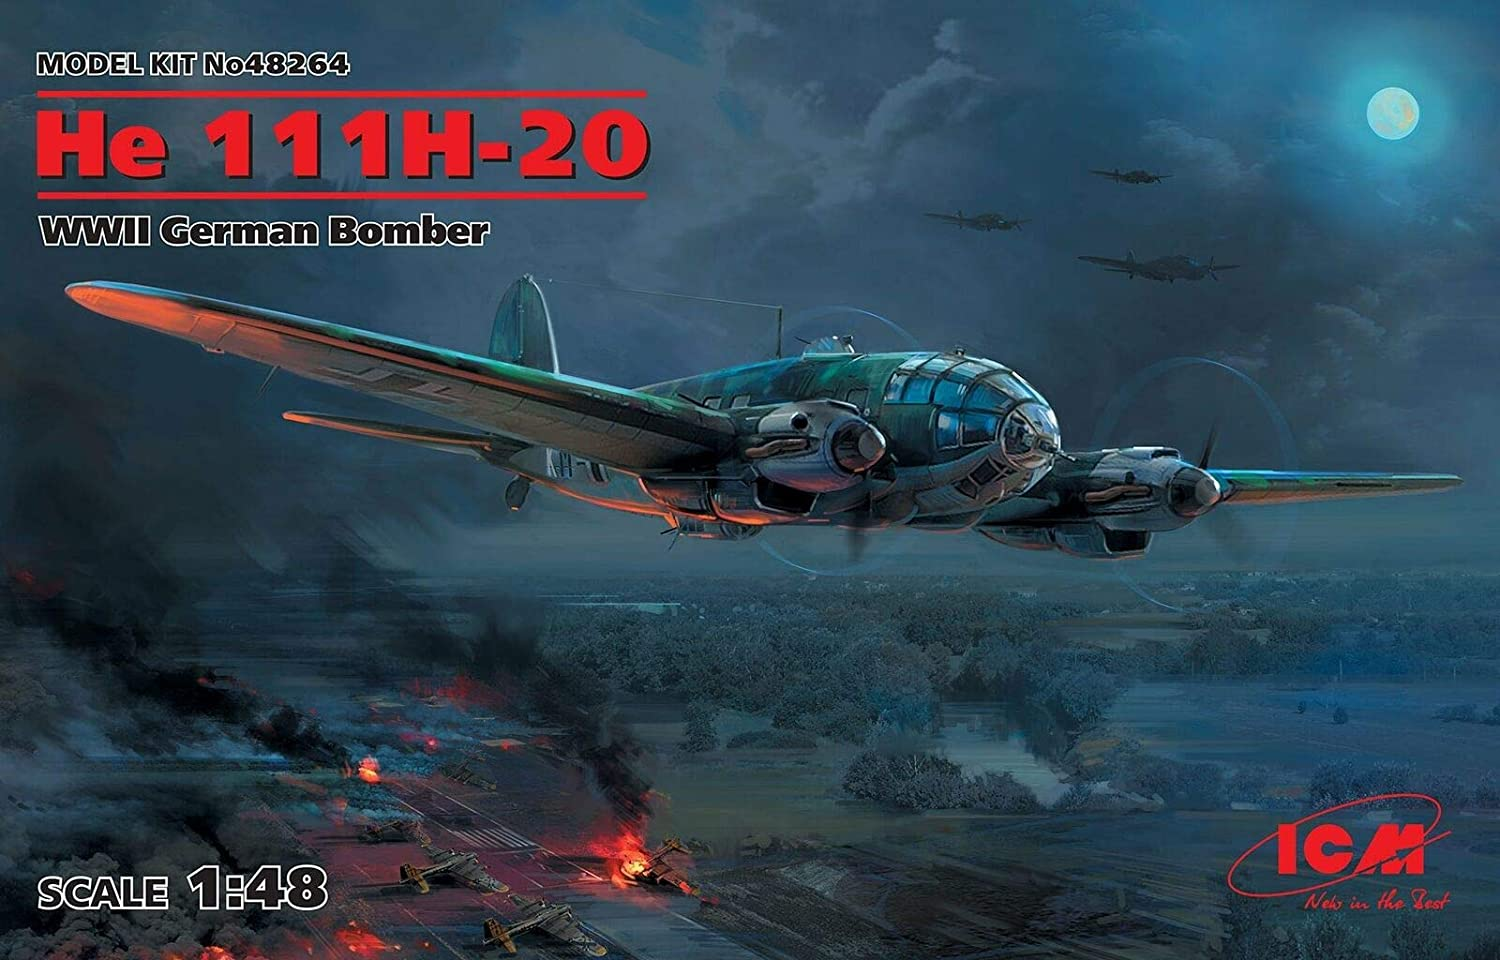 ICM 48264 Sale Special Price - He 111H-20 WWII German Sca Bomber 48 World II San Diego Mall 1 War